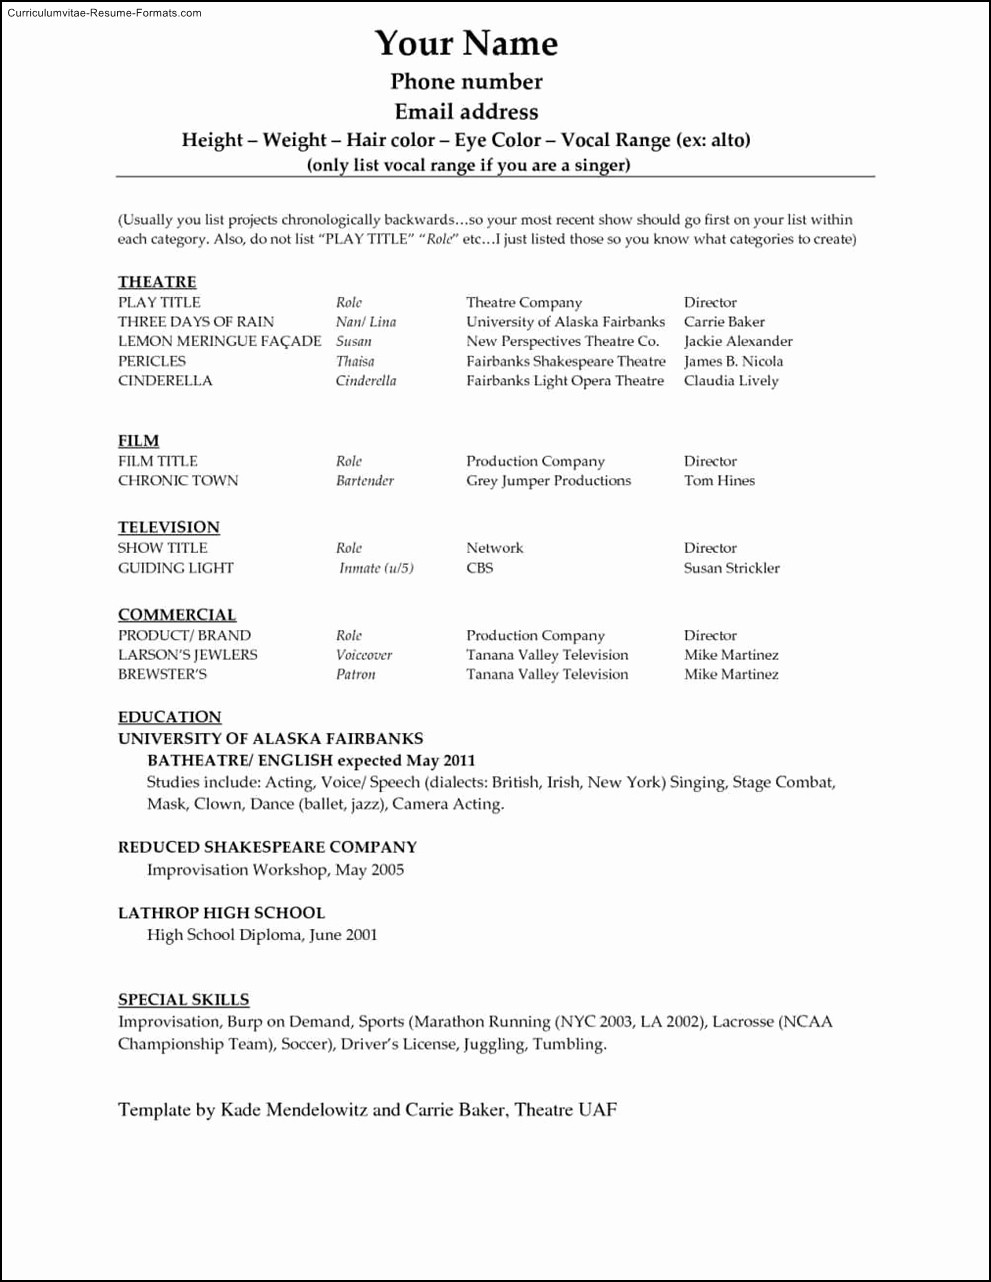 Resumes On Microsoft Word 2010 Beautiful Microsoft Word 2010 Resume Template Free Samples